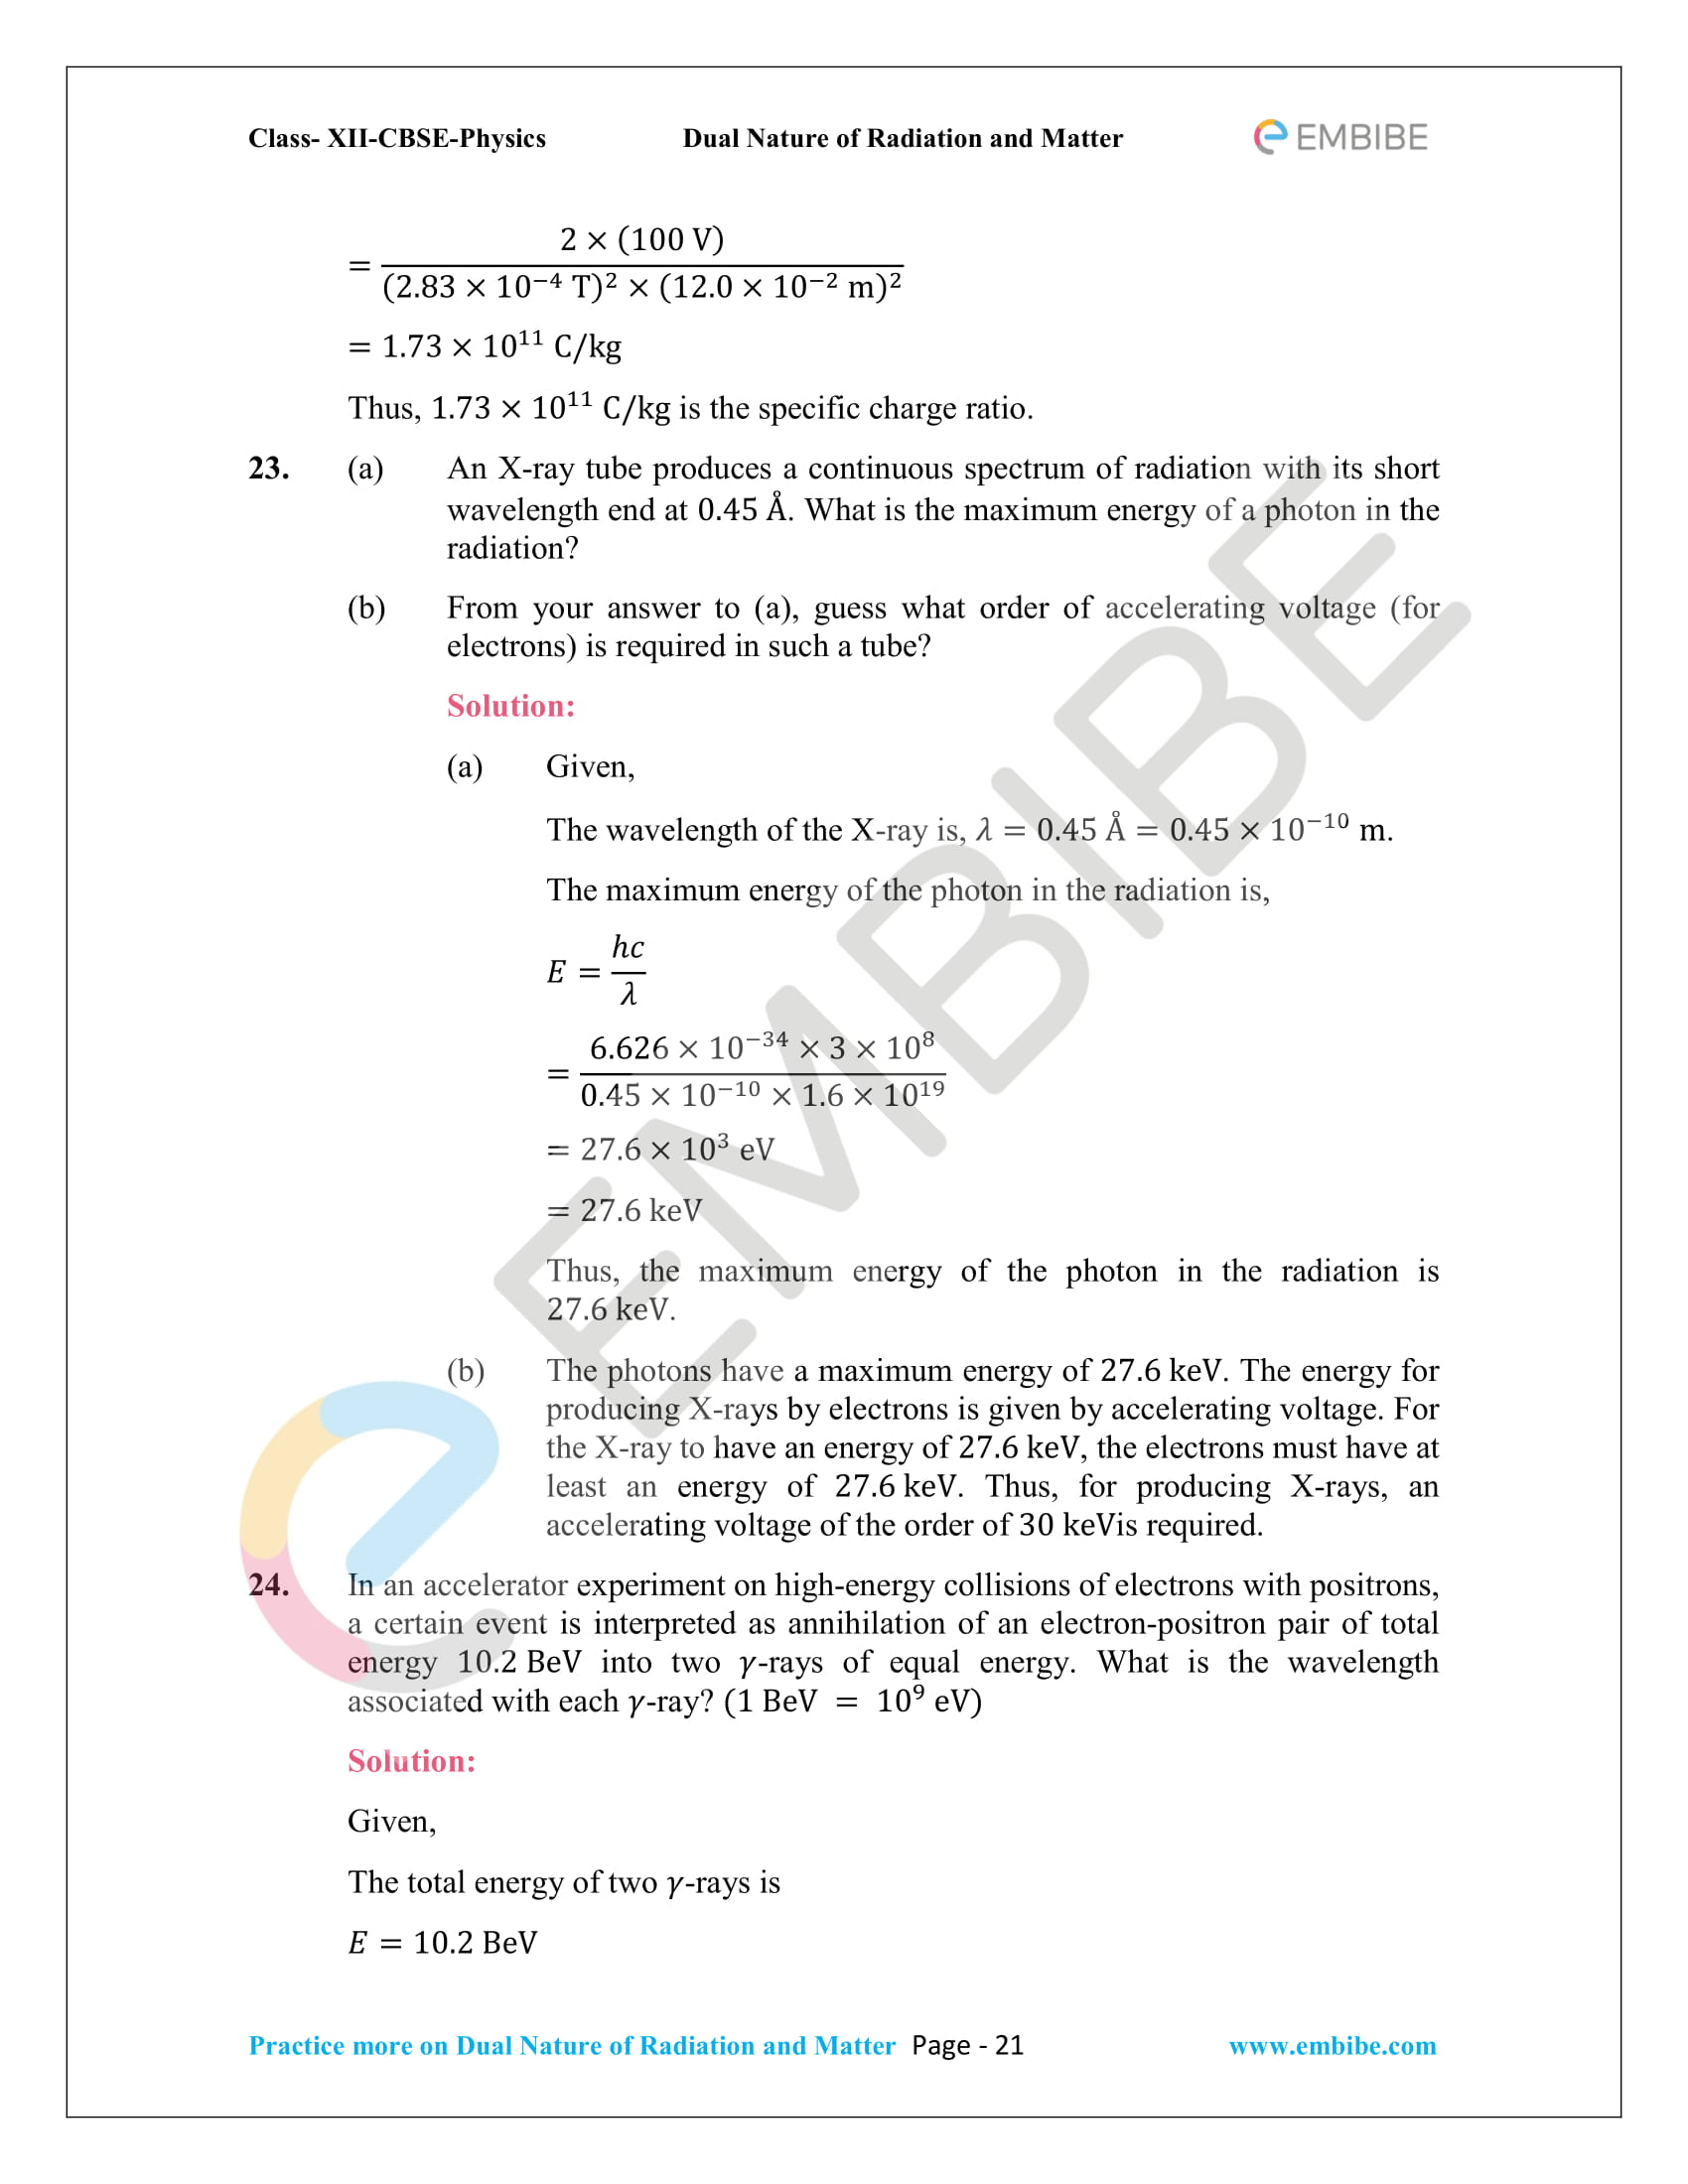 NCERT_Grade 12_Physics_Ch_11_Dual Nature of Radiation and Matter-21